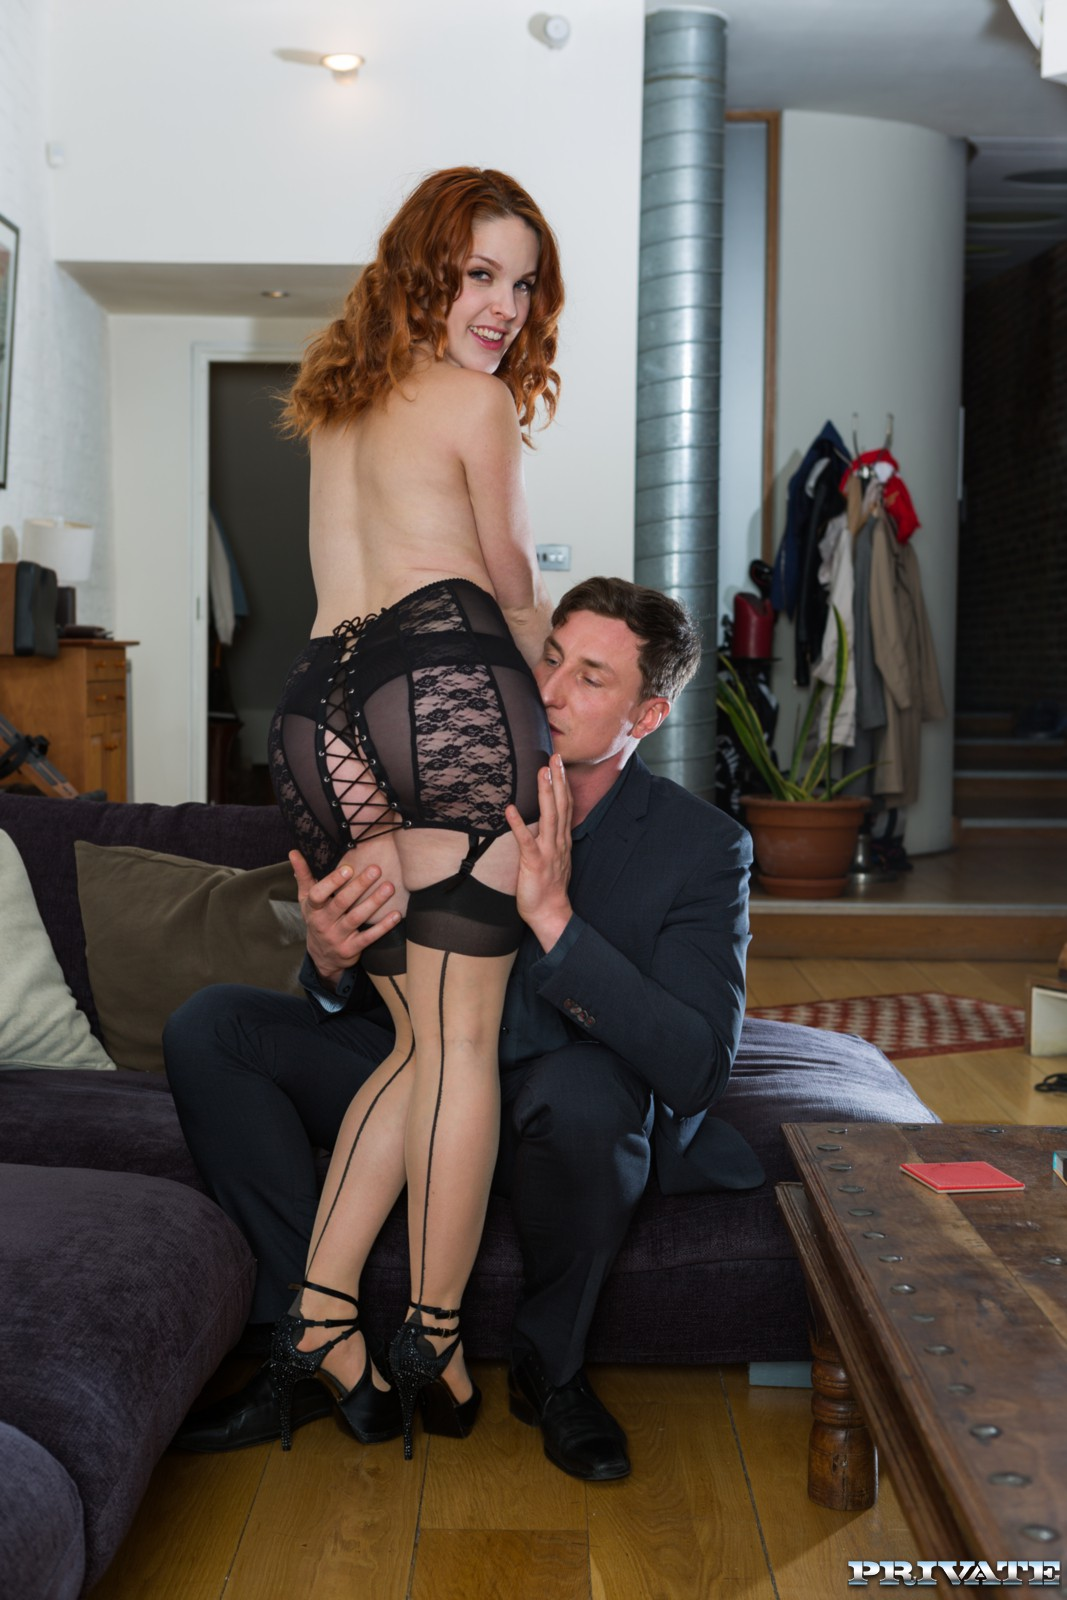 18+ Red Head Gets Cum Hairy Pussy (2021) New Adult 720p HDRip 300MB Download